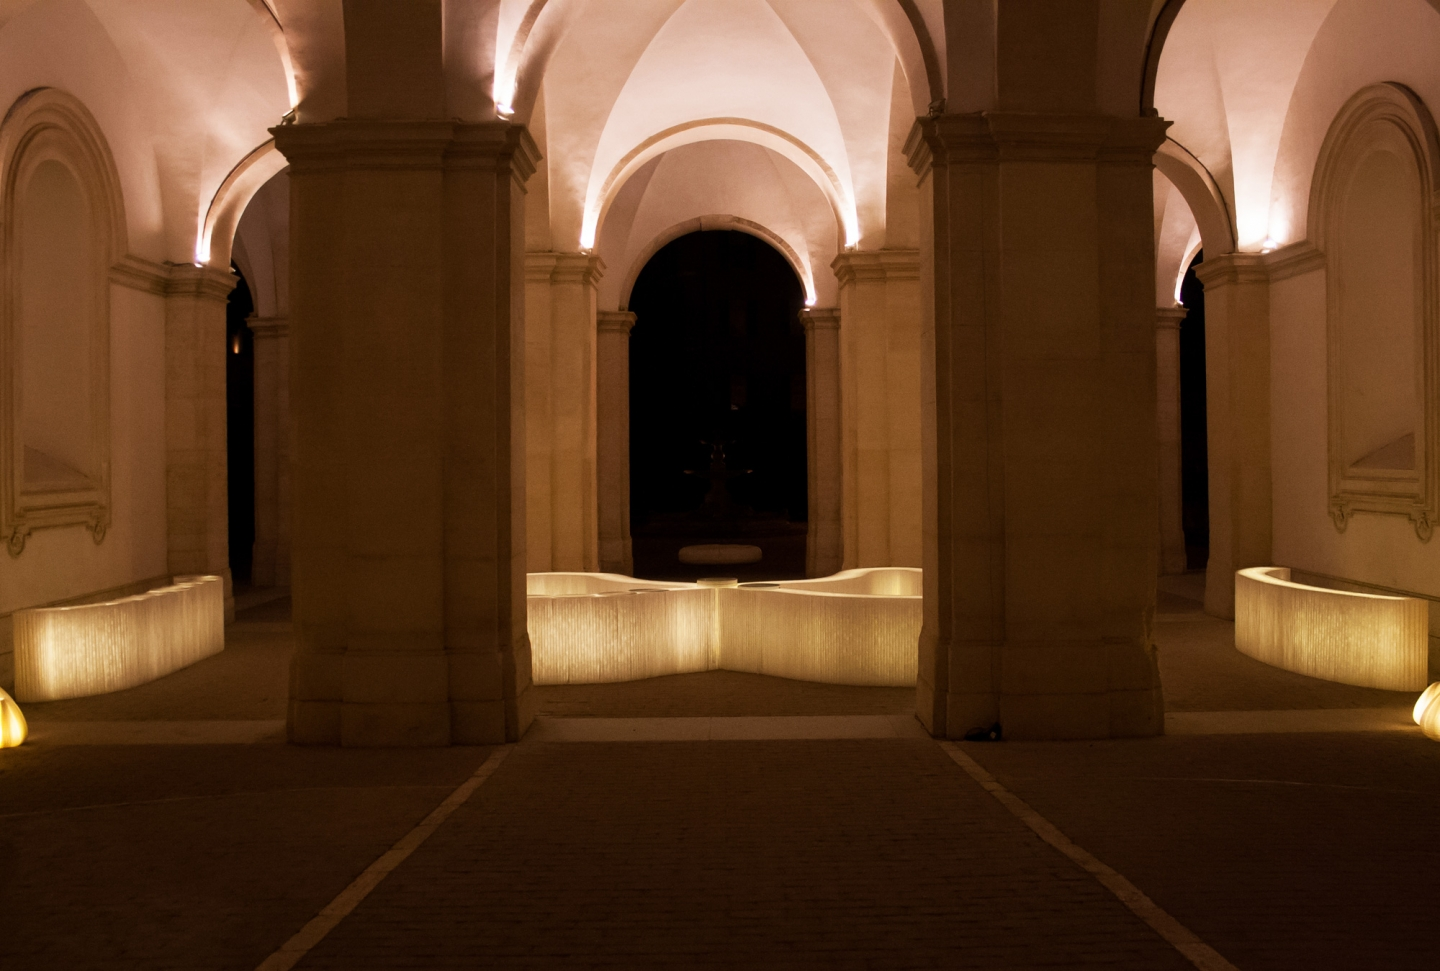 molo white textile softblocks + LED at the Chamber Music Festival 2013 in Rome